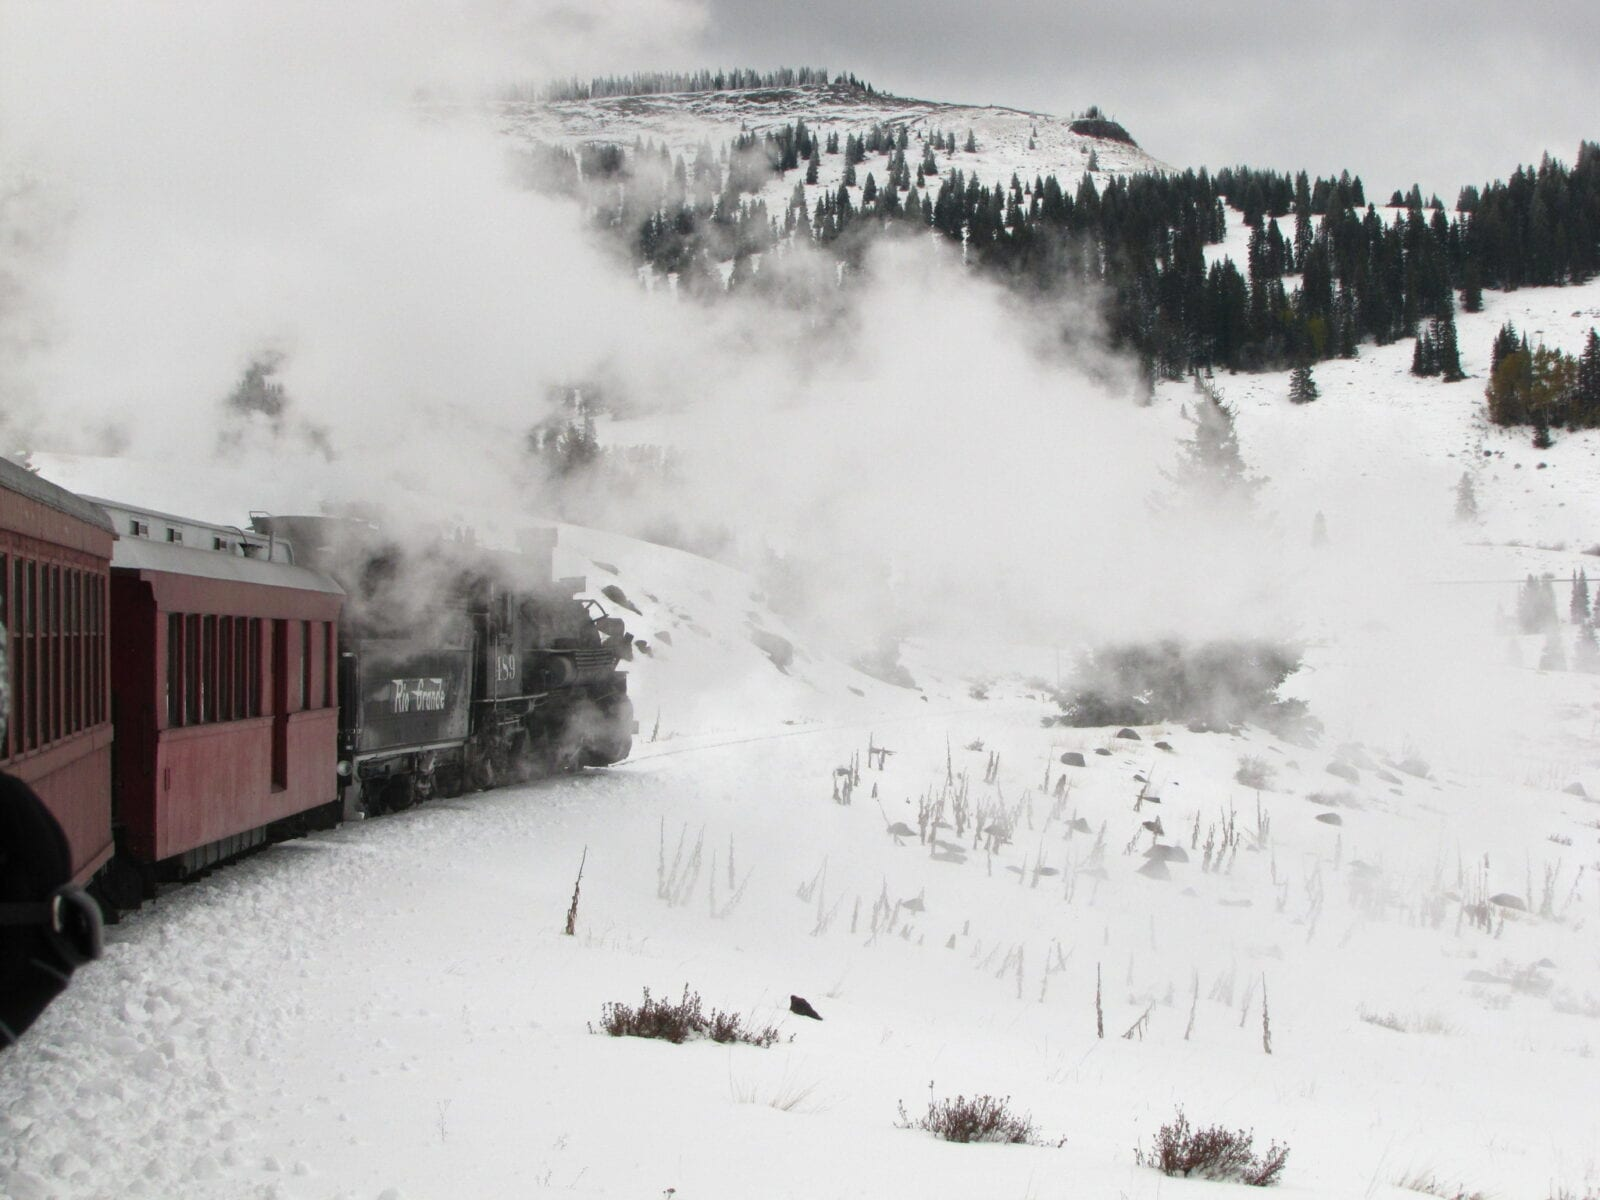 image of Cumbres and toltec train in winter